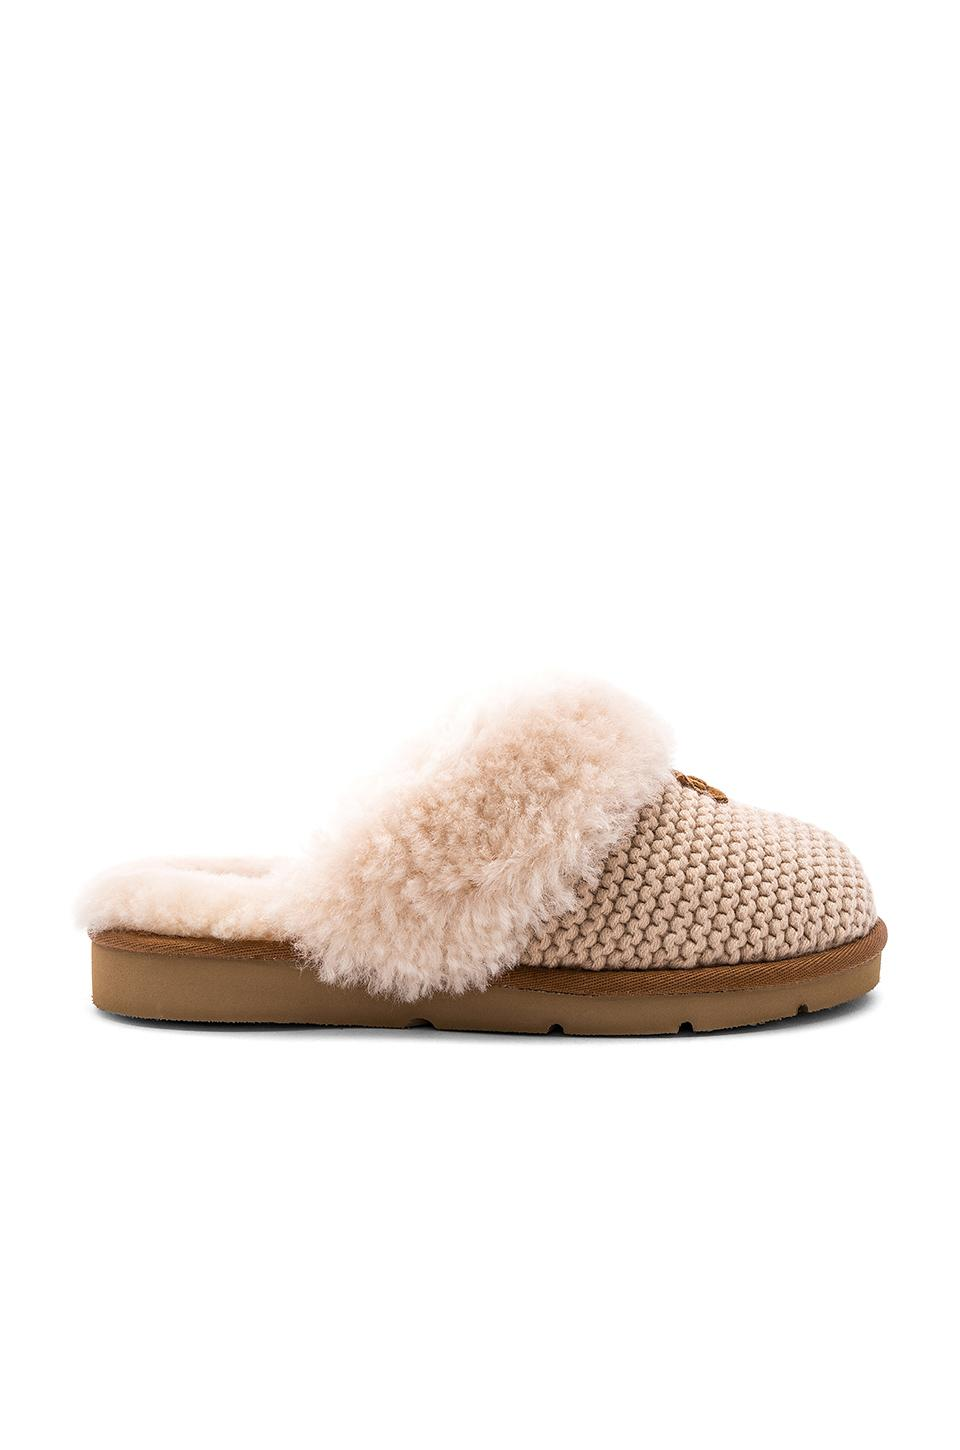 Ugg Cozy Knit Slippers With Sheepskin In Cream  f935ddb00